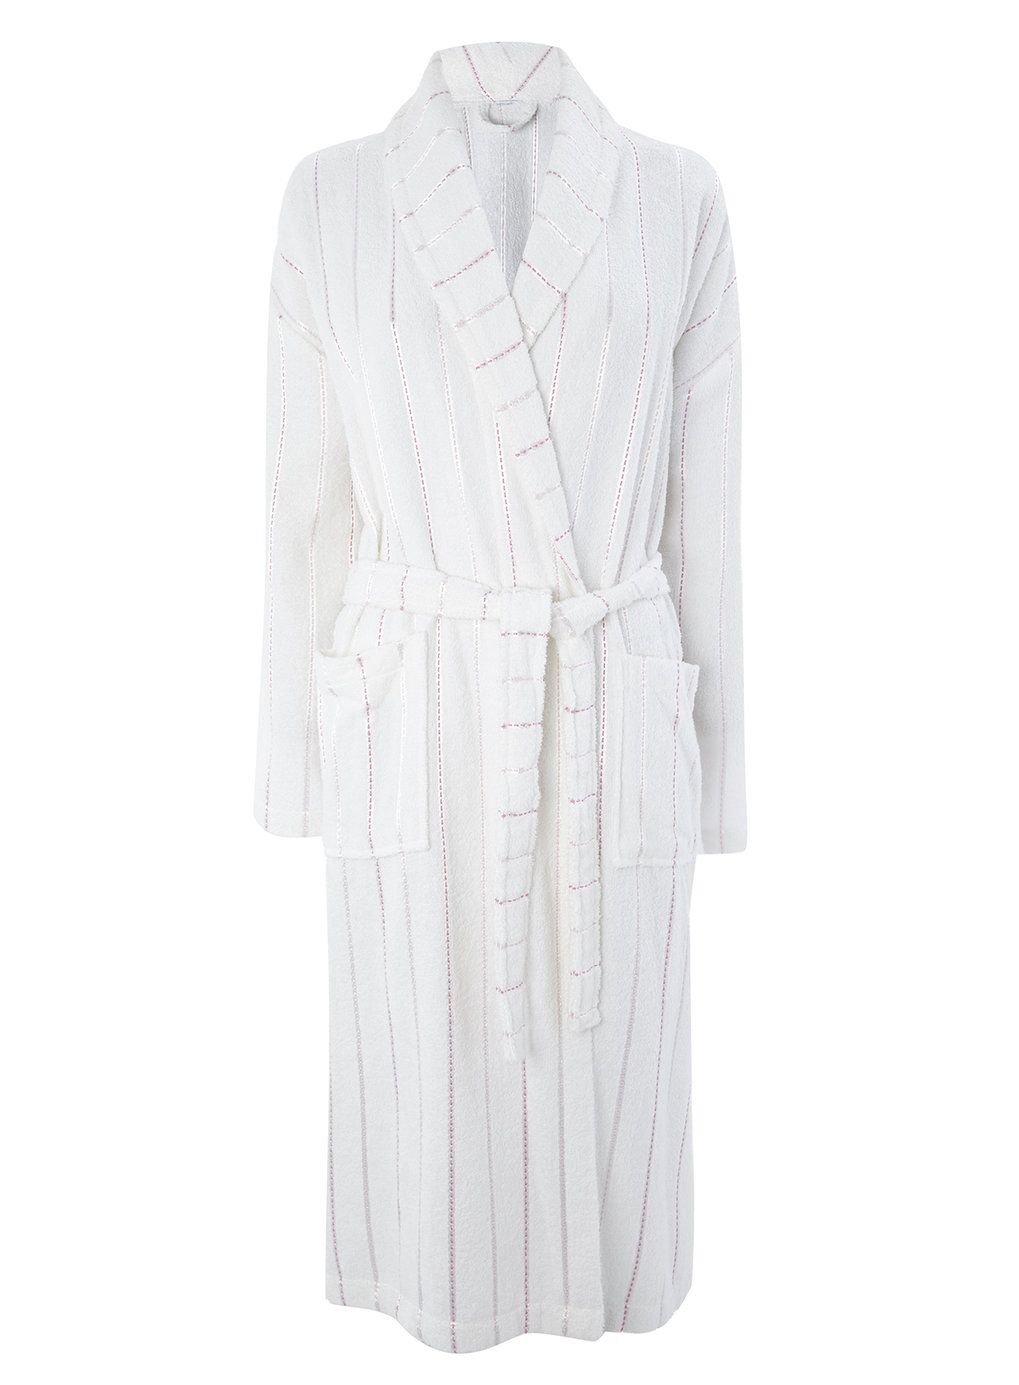 Pink/White Ladies Towelling Dressing Gown | towelling robe ...